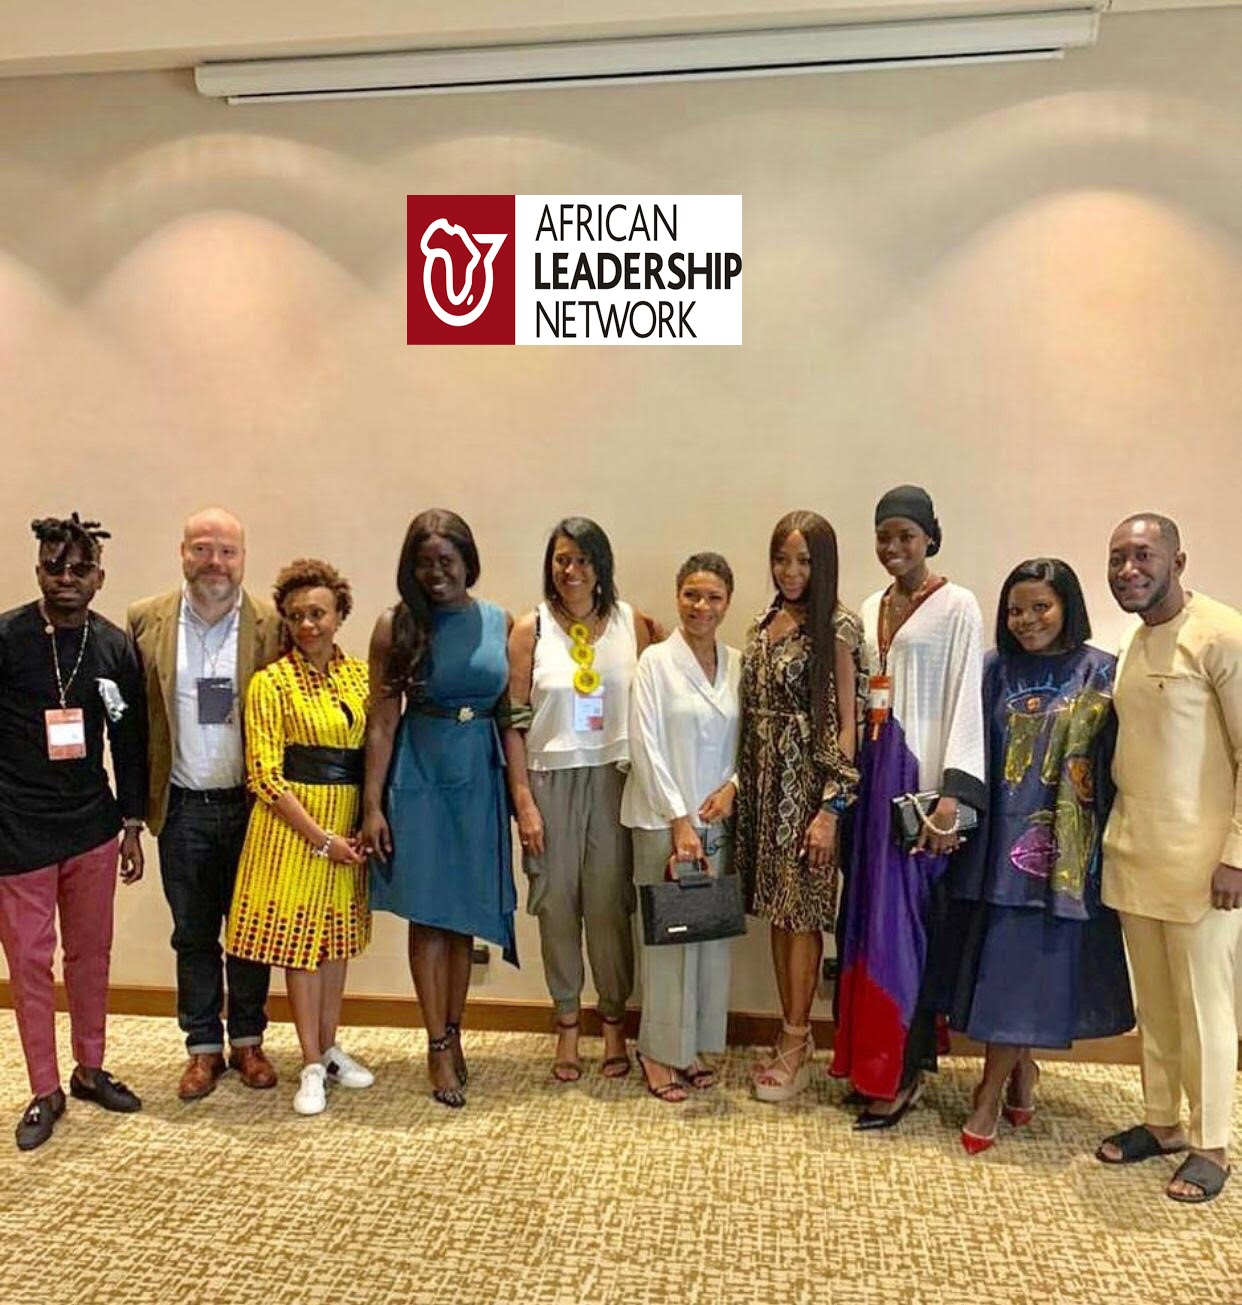 2. African Leadership Network (ALN) Conference